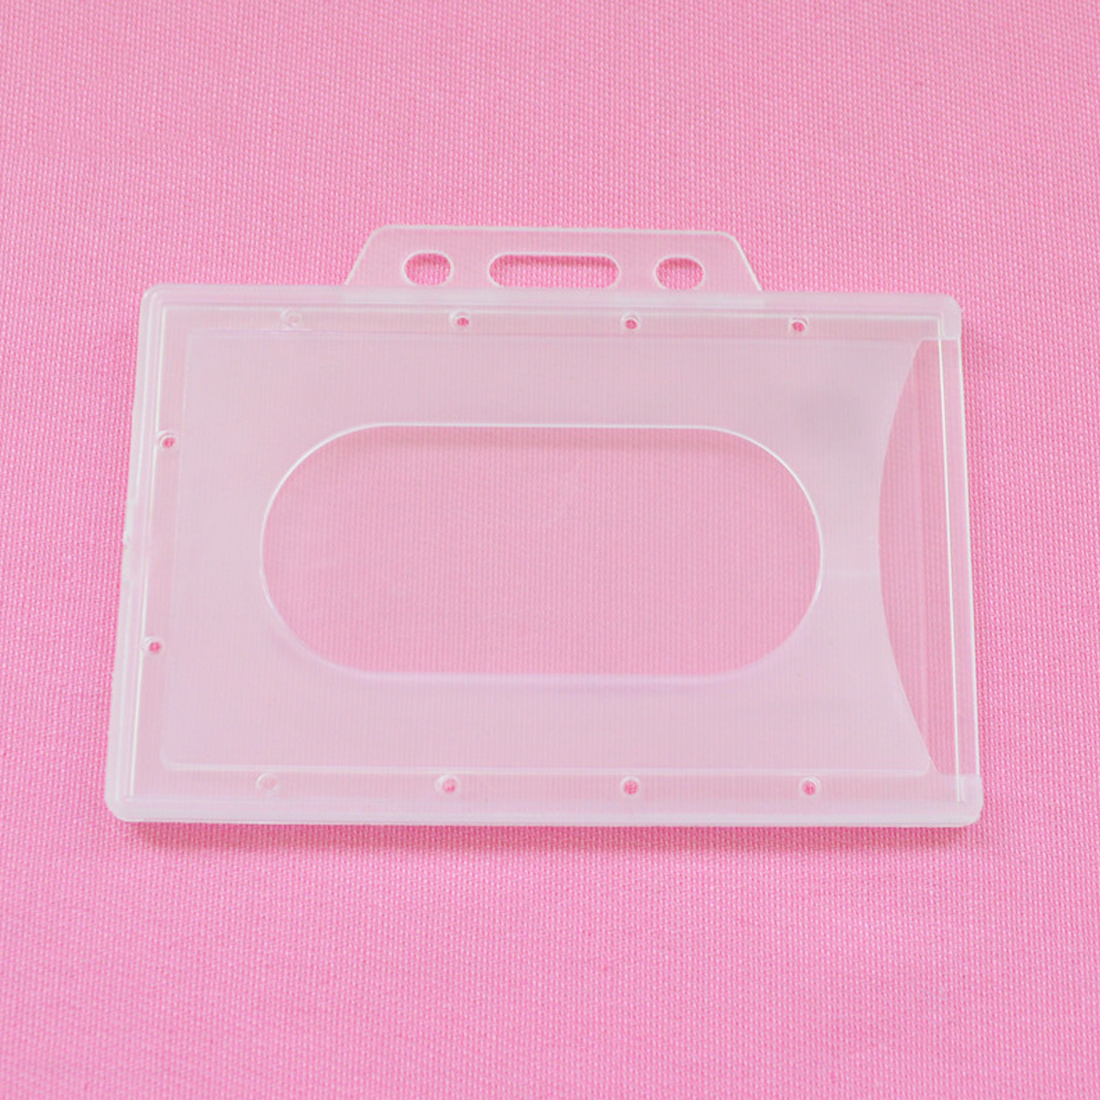 New Arrival 90*66mm Translucent Credit Hard Card Holders Bank Card Neck Strap Card Bus ID holder students Identity badge Box